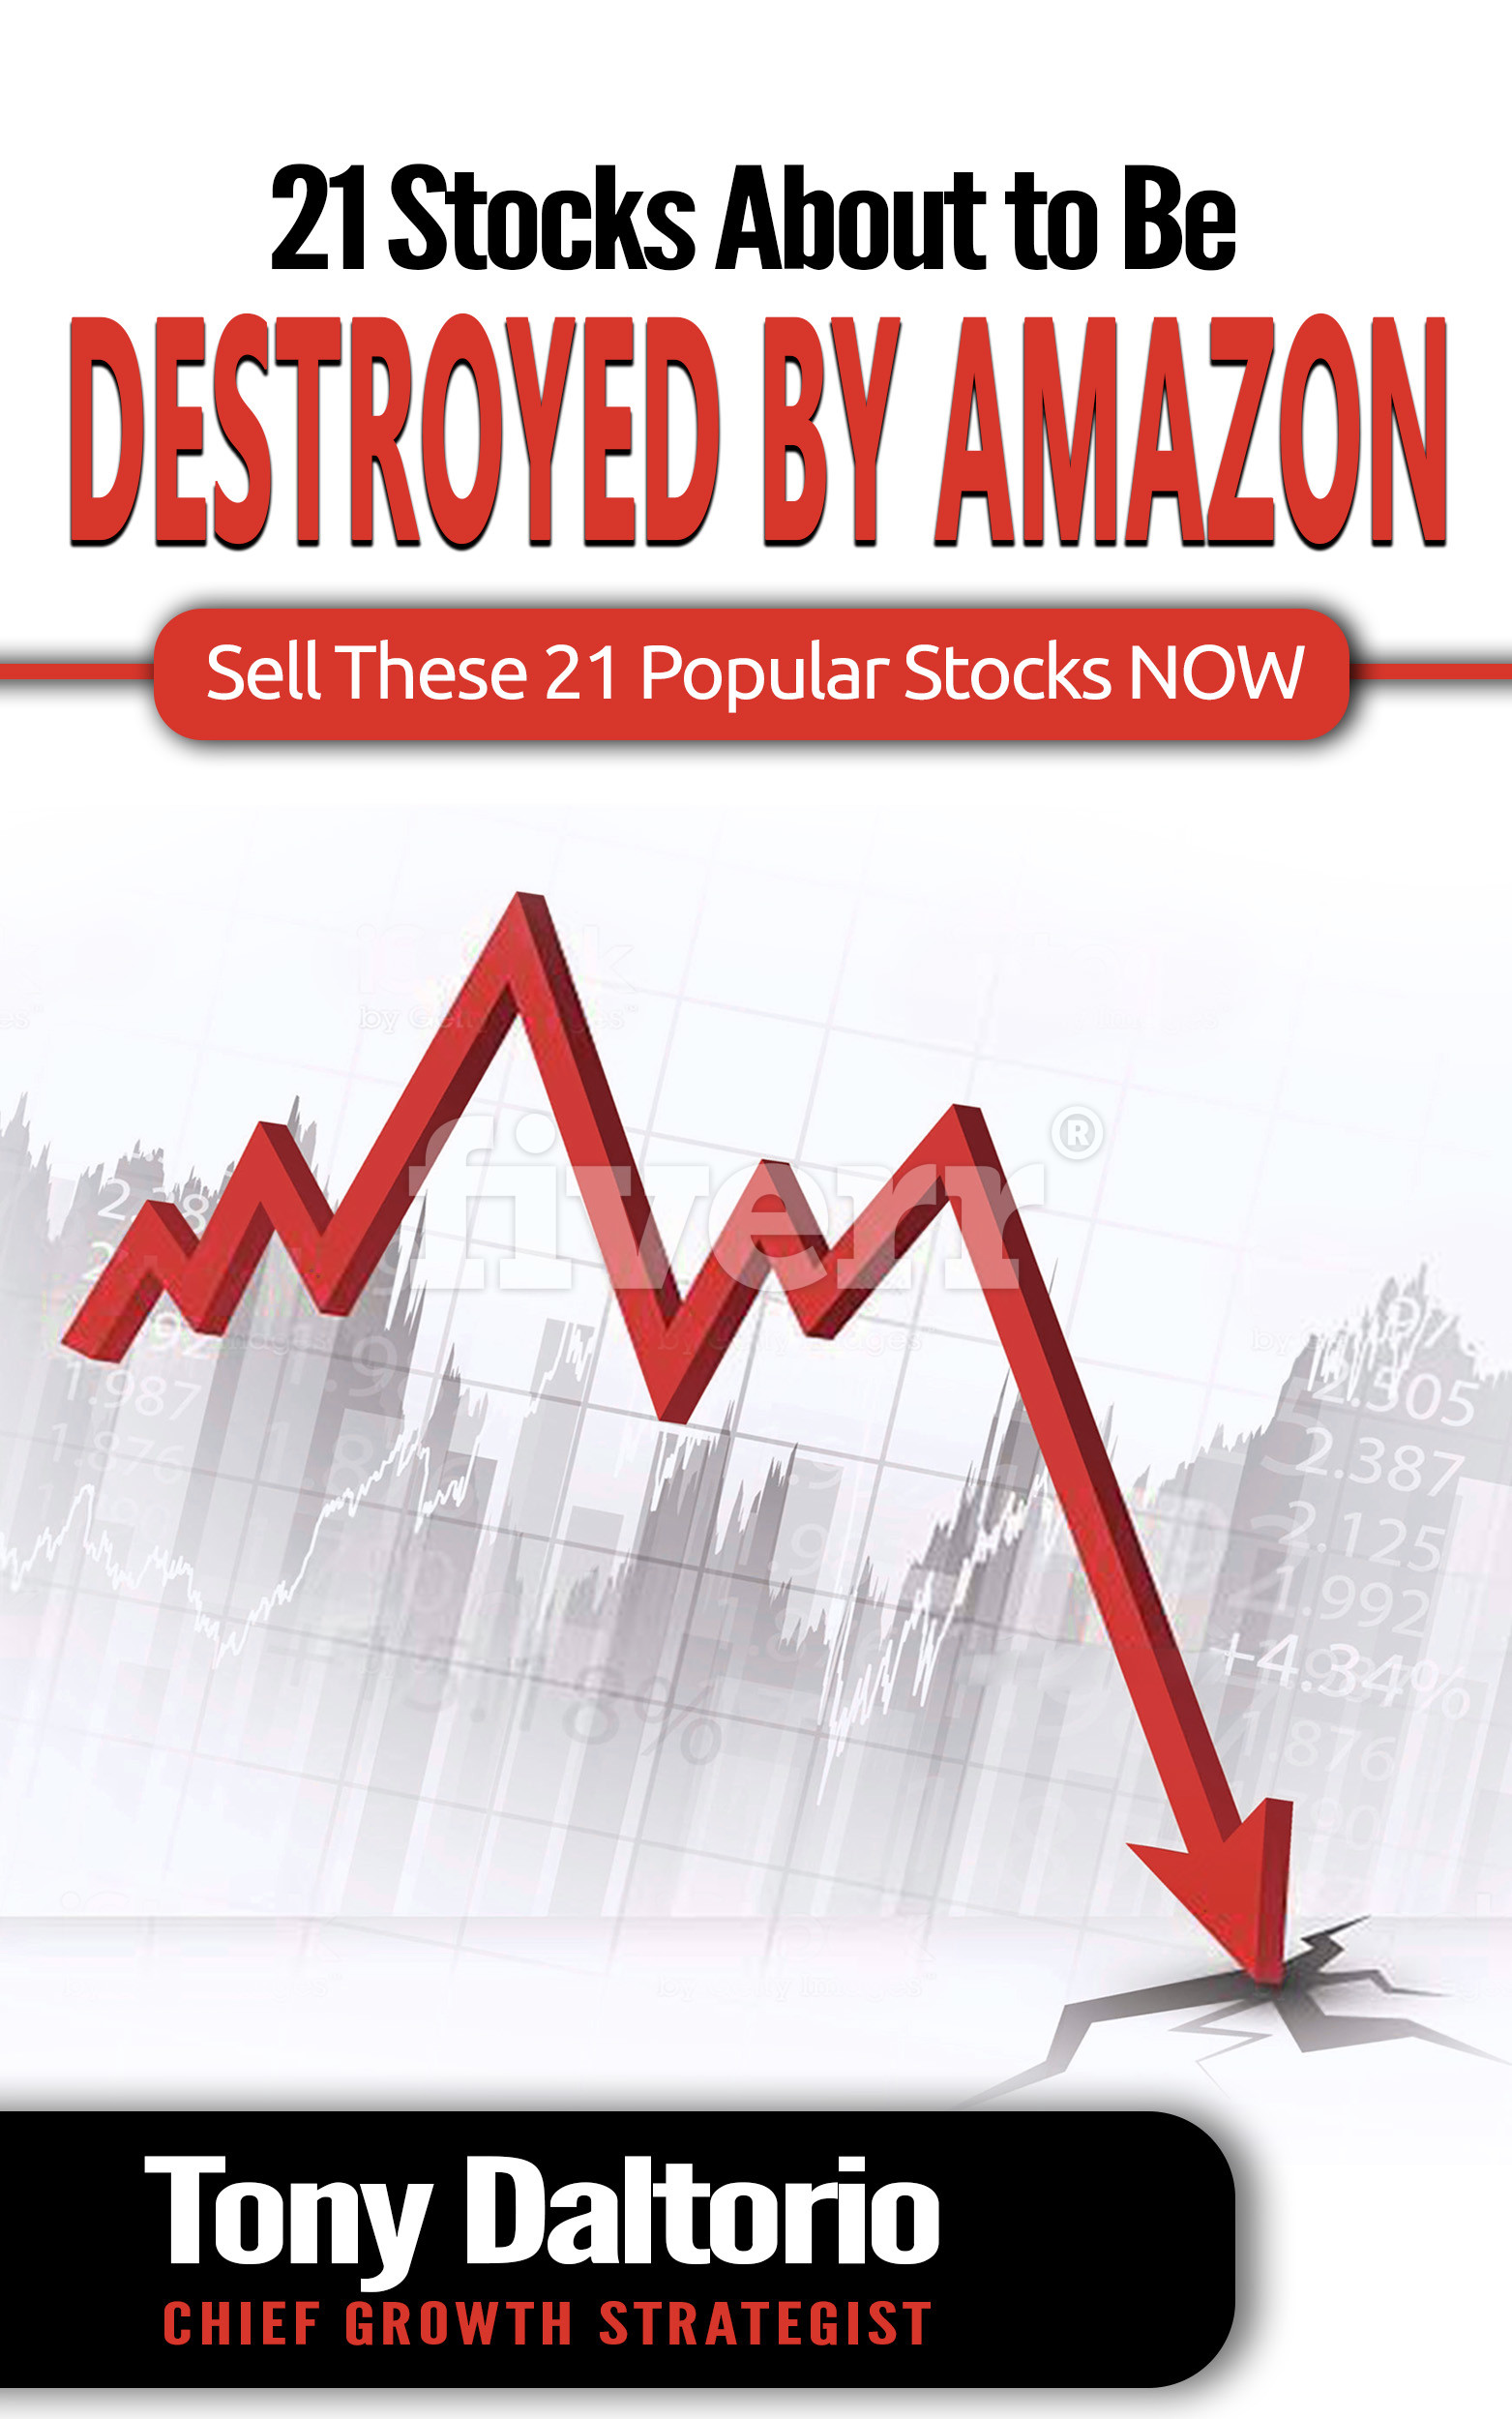 [NEW REPORT]21 Stocks About to Be Destroyed By Amazon